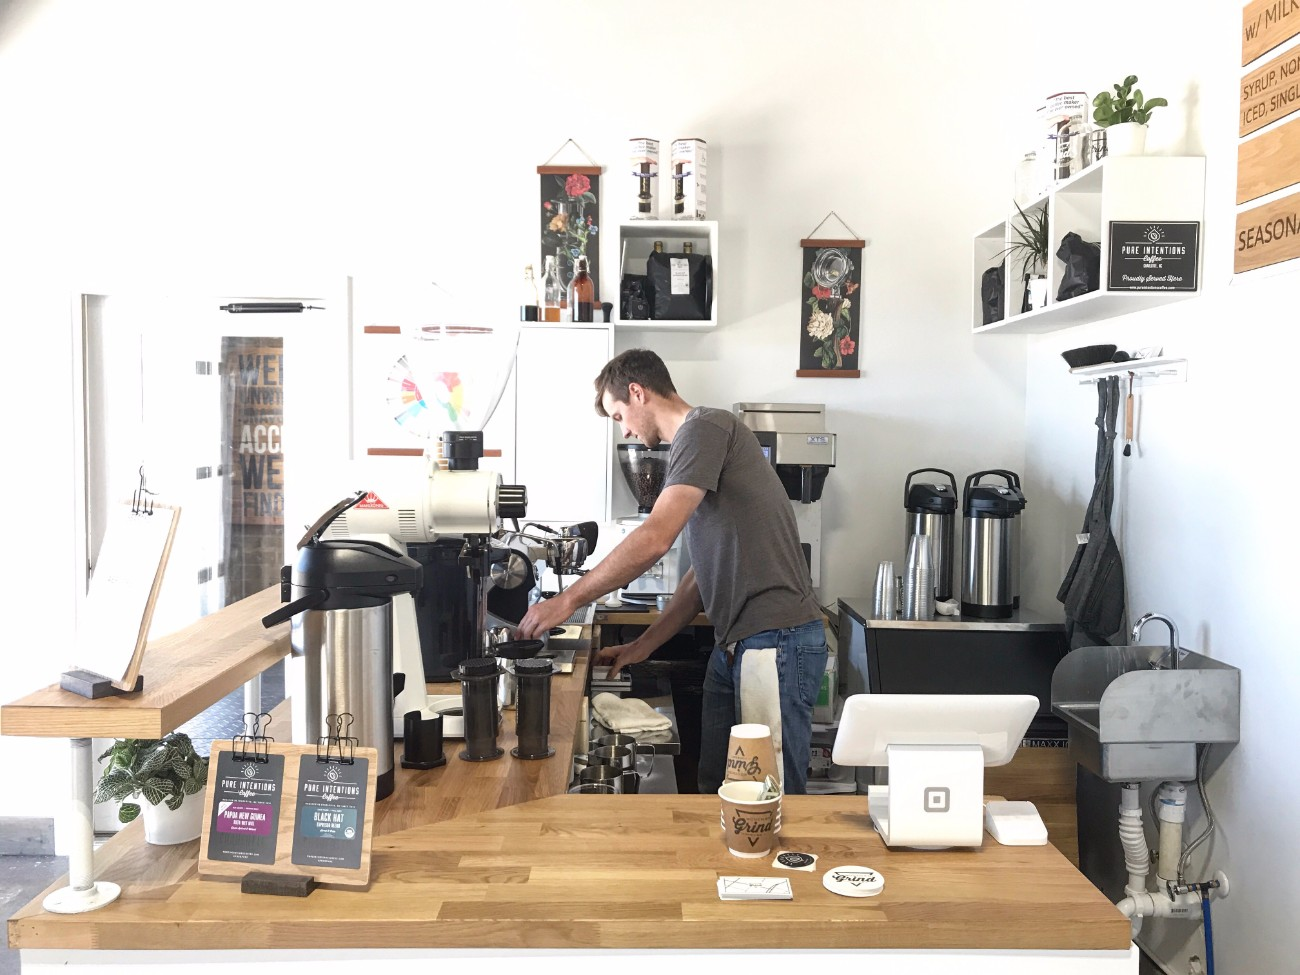 South End Grind, Charlotte's newest coffee bar, is now open on Clanton Road